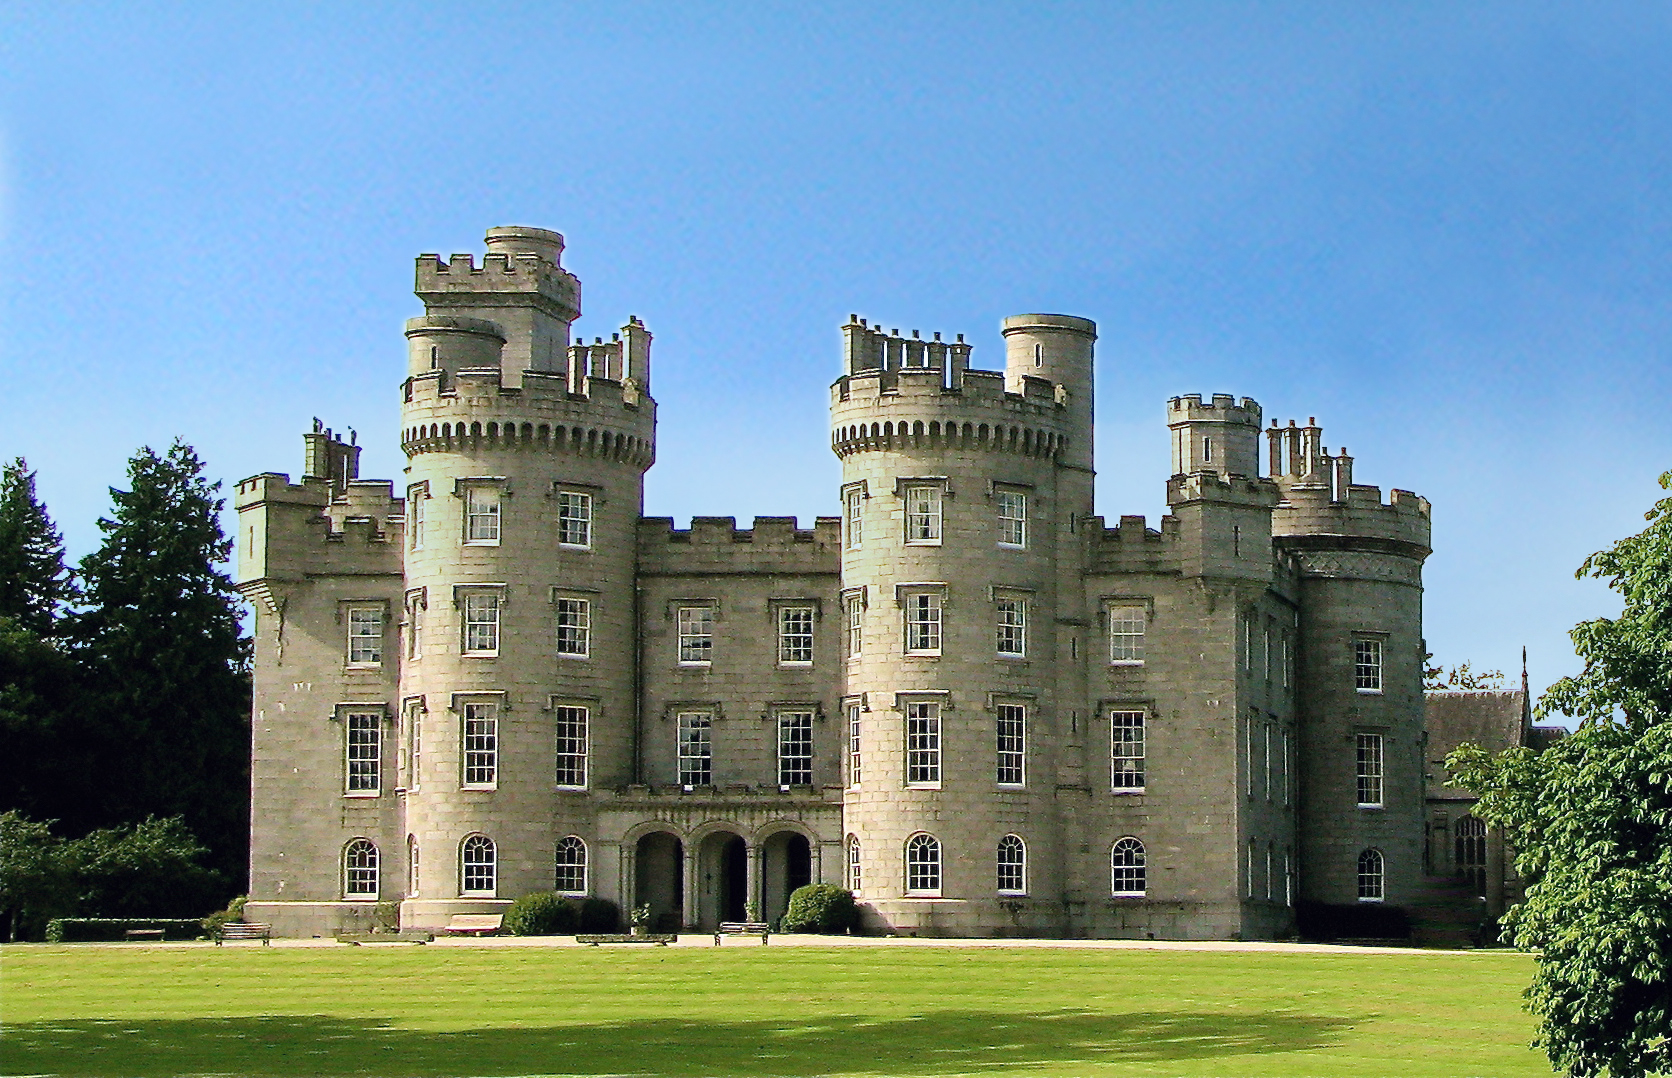 Castle with turrets and balustrades